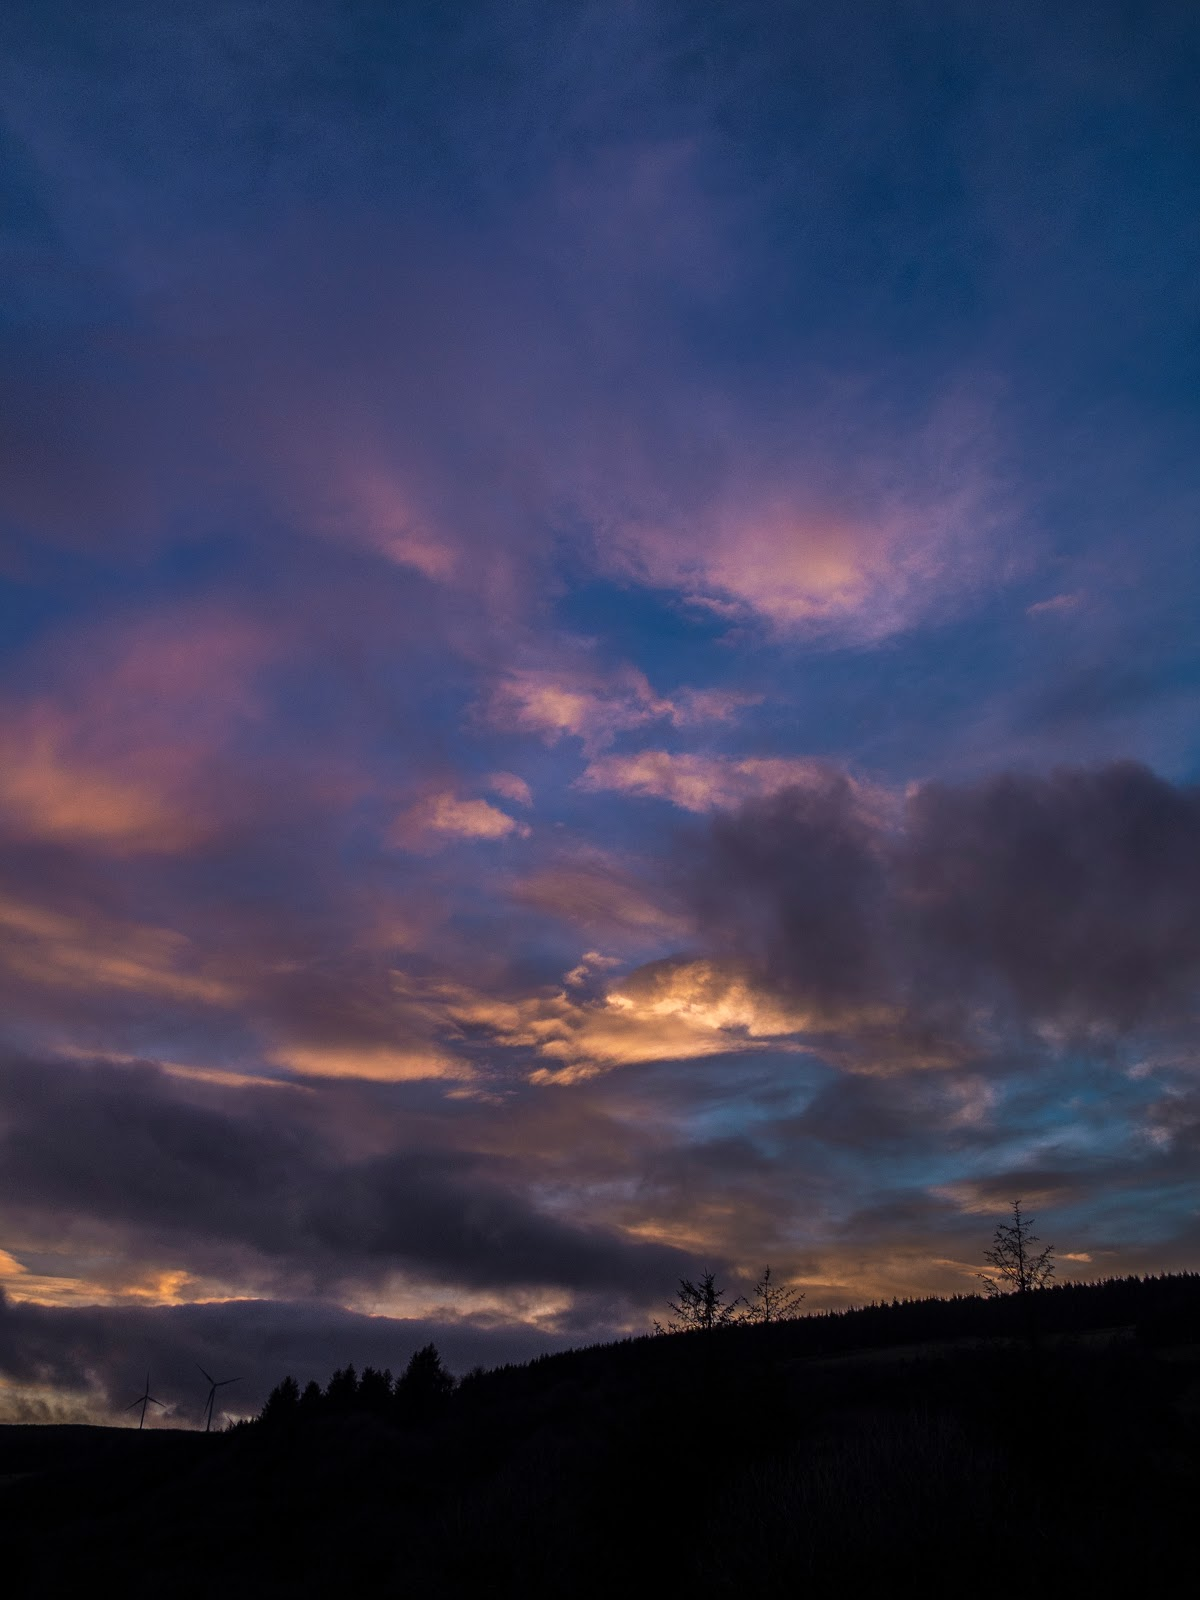 Mountain landscape of clouds at sunset in North Cork, Ireland.